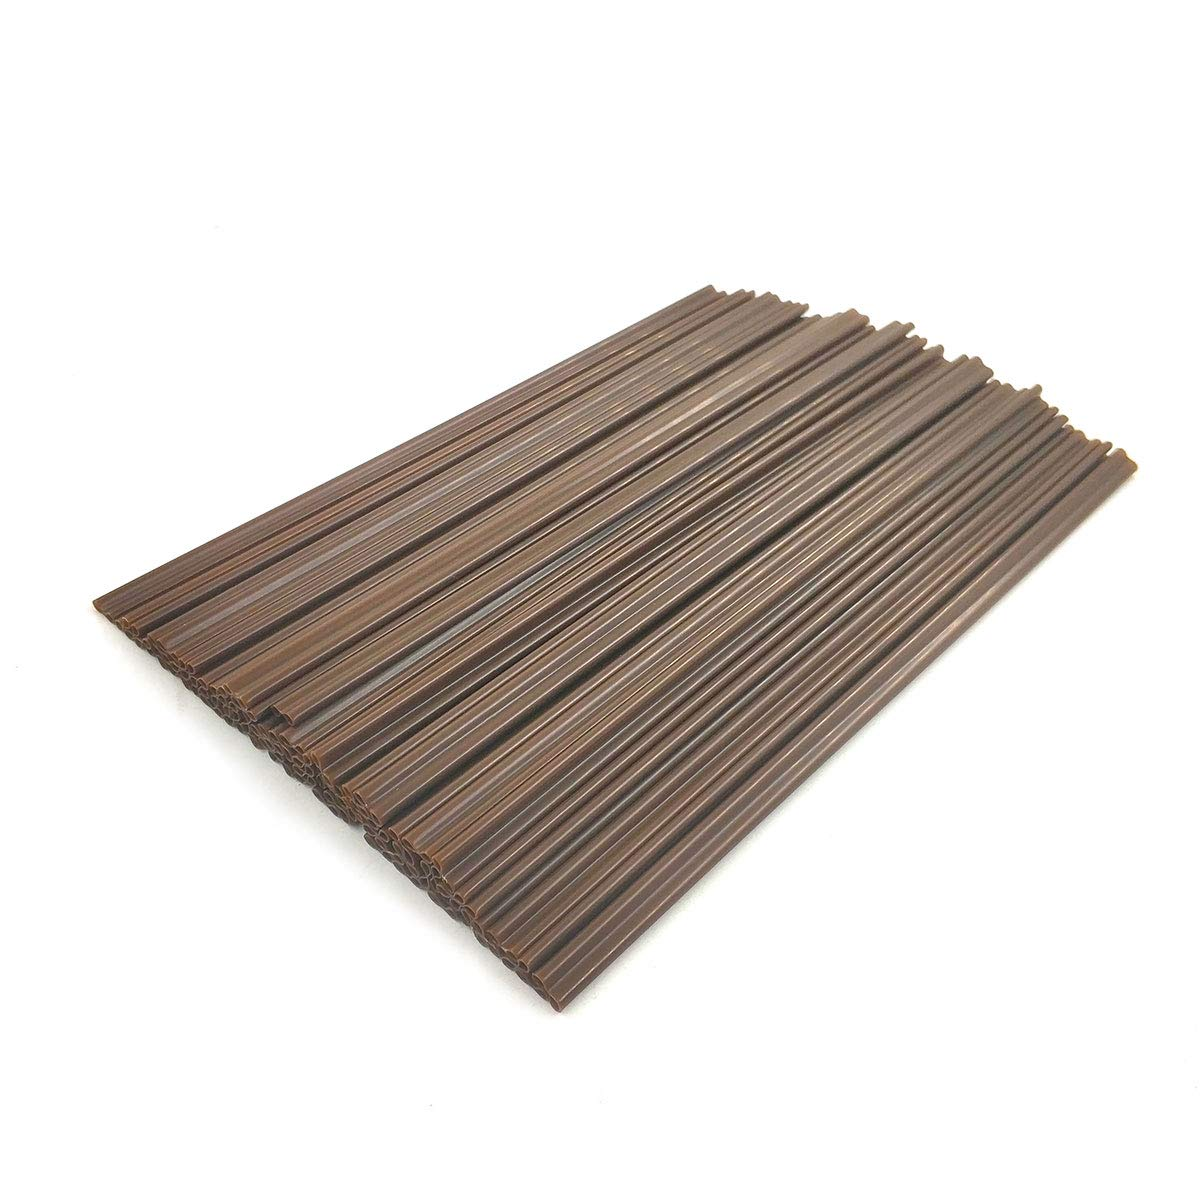 Daycount 500pcs/set Disposable Two-place Sucker Straws Stirrer Coffee Drinking Straws, Plastic Coffee Stiring Stick for Cafe, Restaurant, Home Use 7''